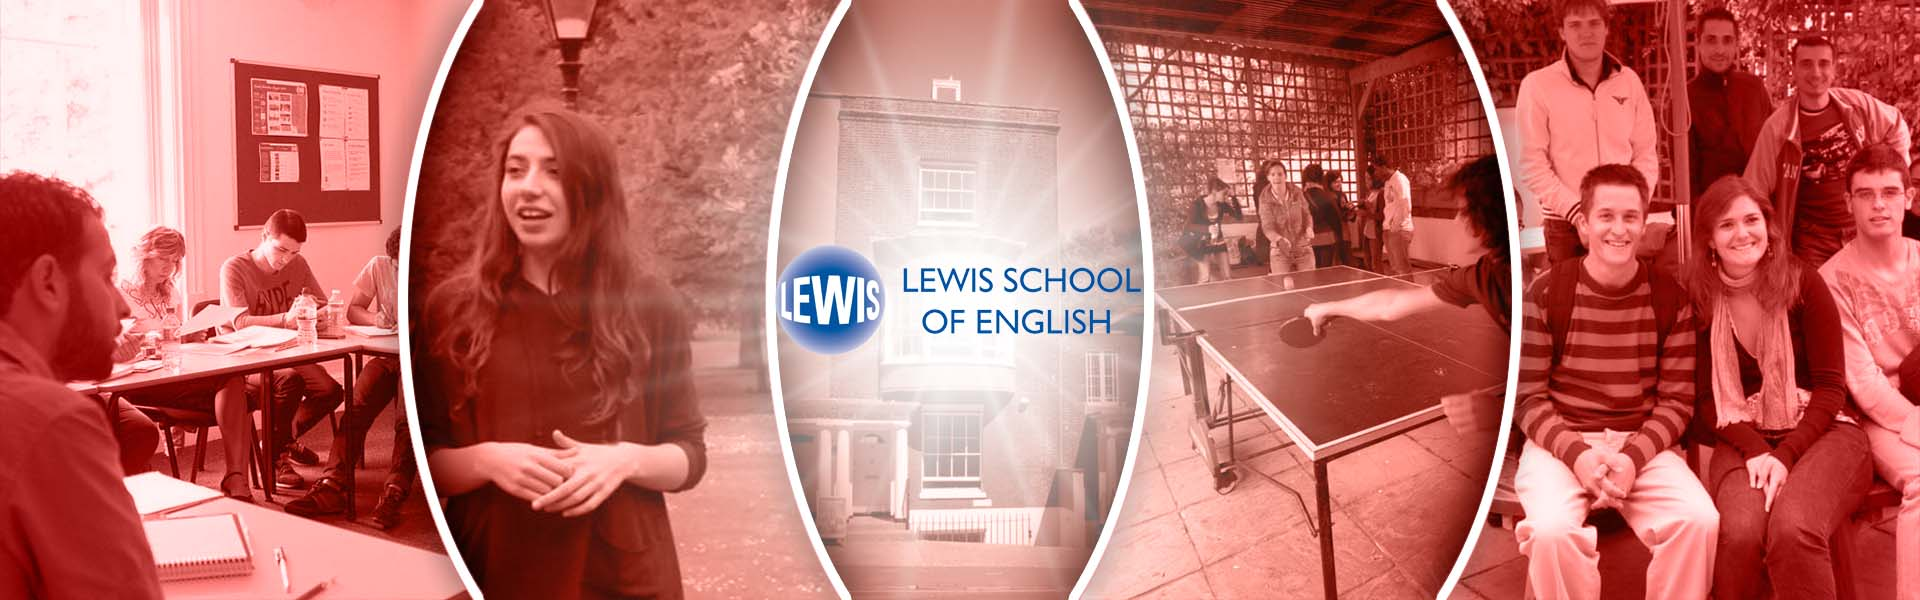 Lewis School of English Dil Okulu